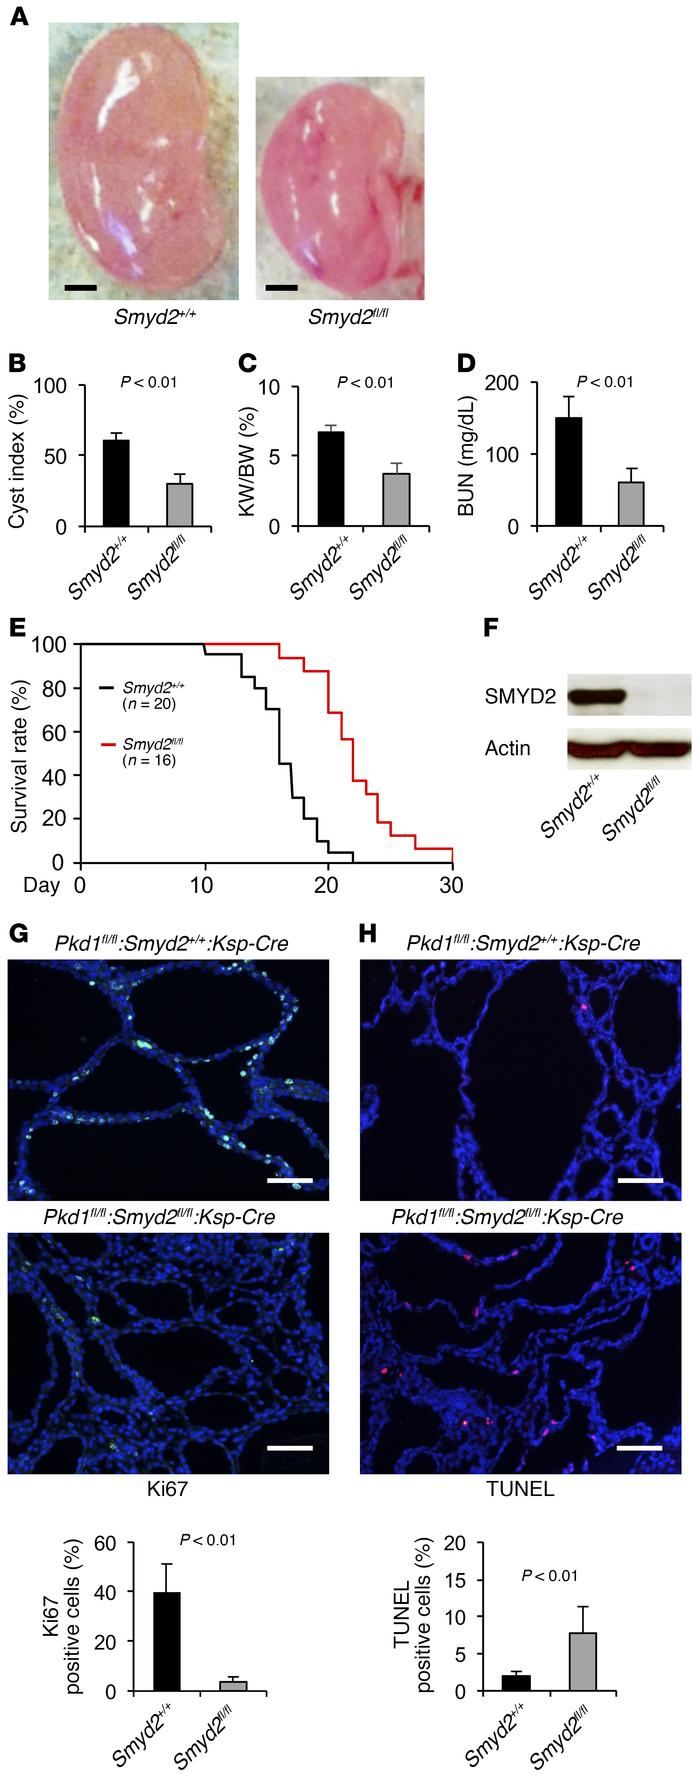 medium resolution of double conditional knockout of smyd2 and pkd1 delayed renal cyst formati